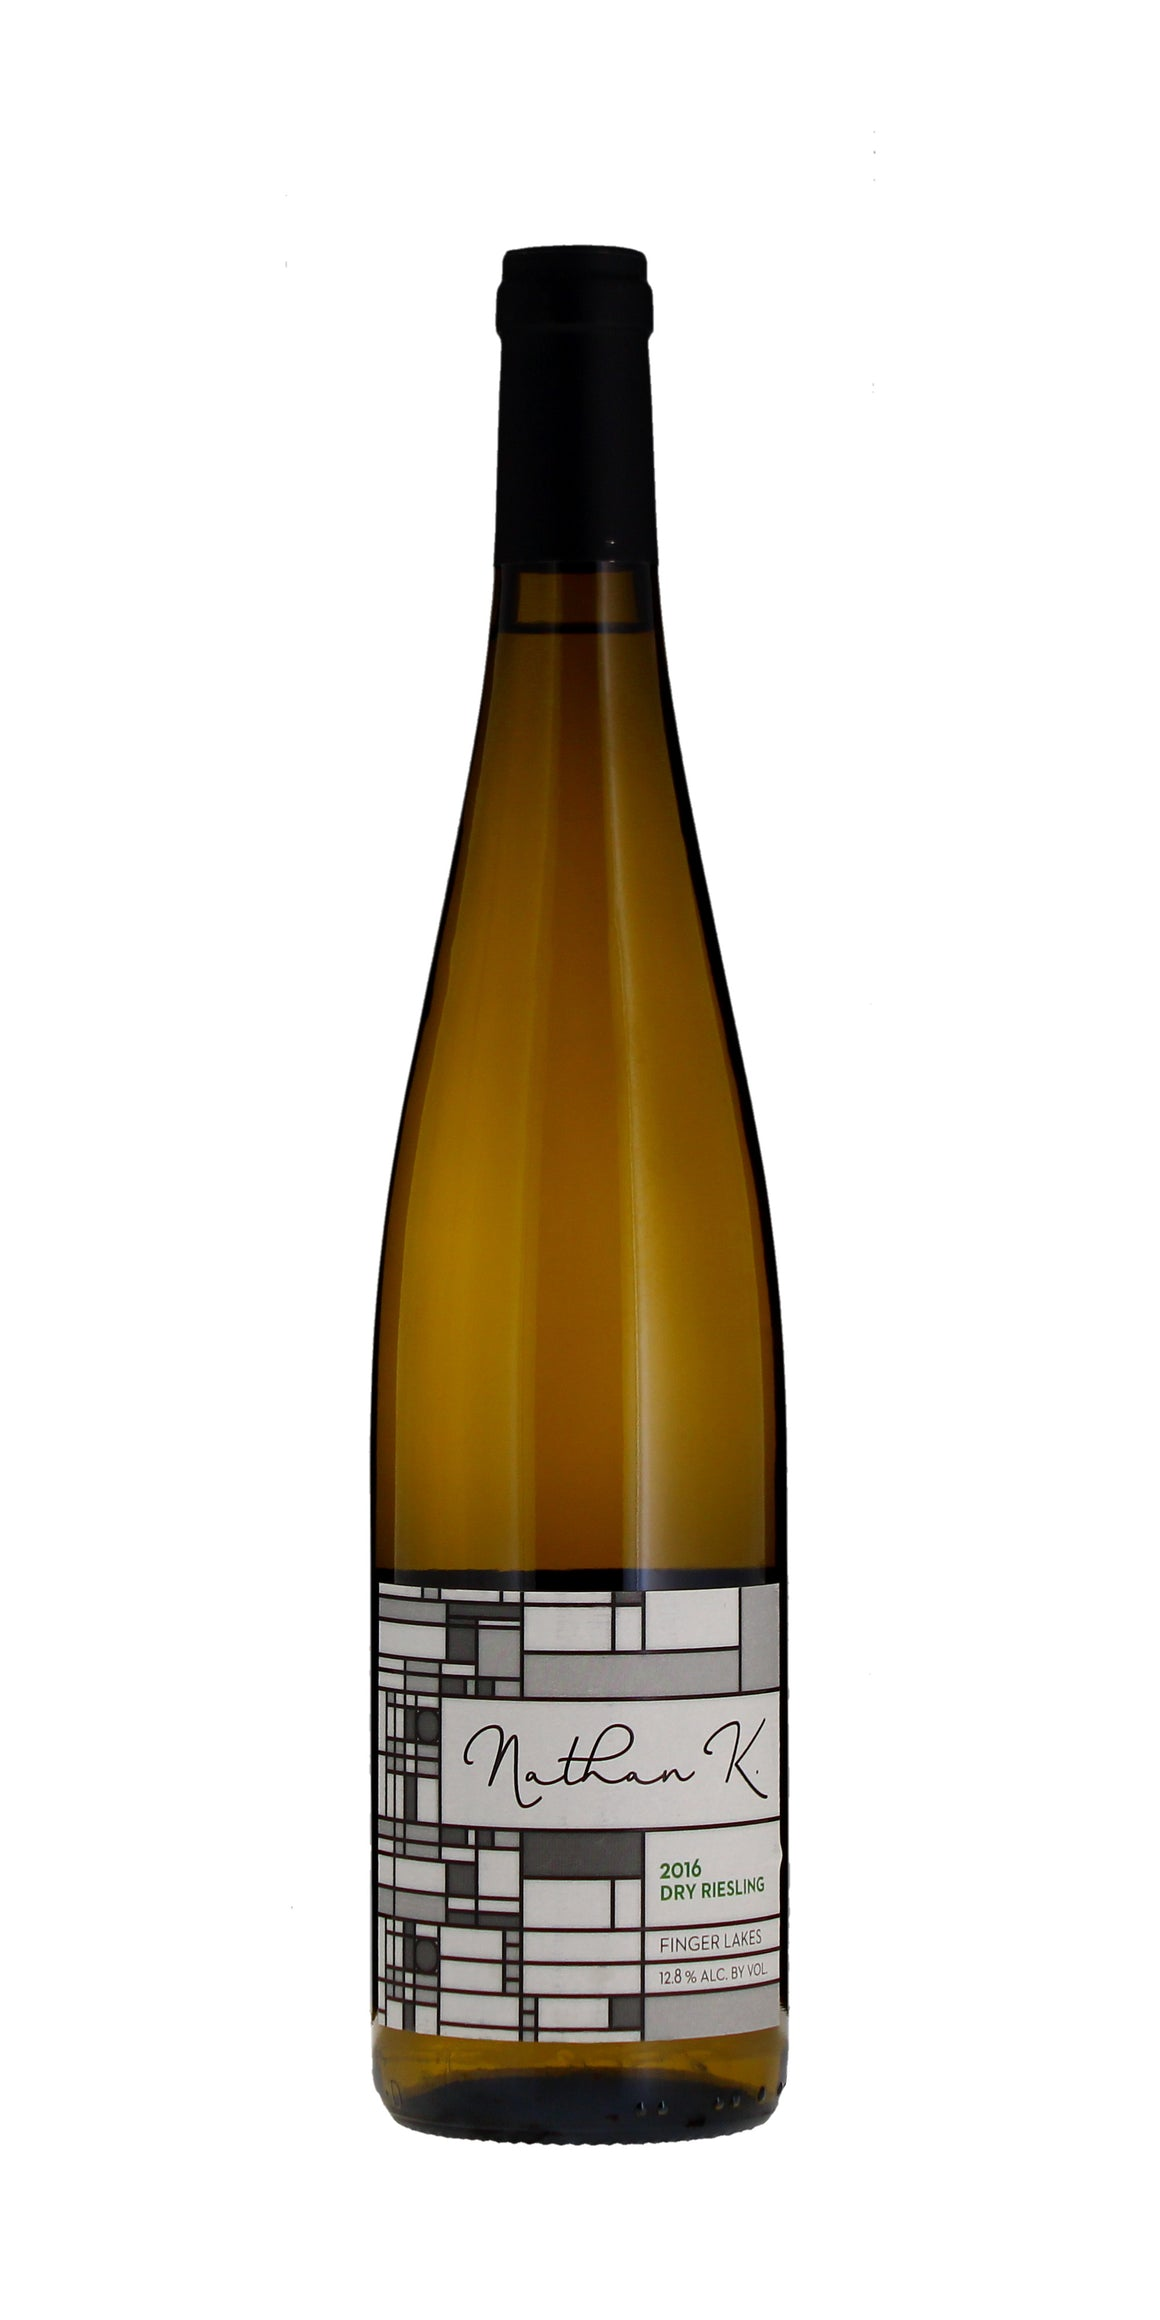 Nathan Kendall Dry Riesling, Finger Lakes 2016